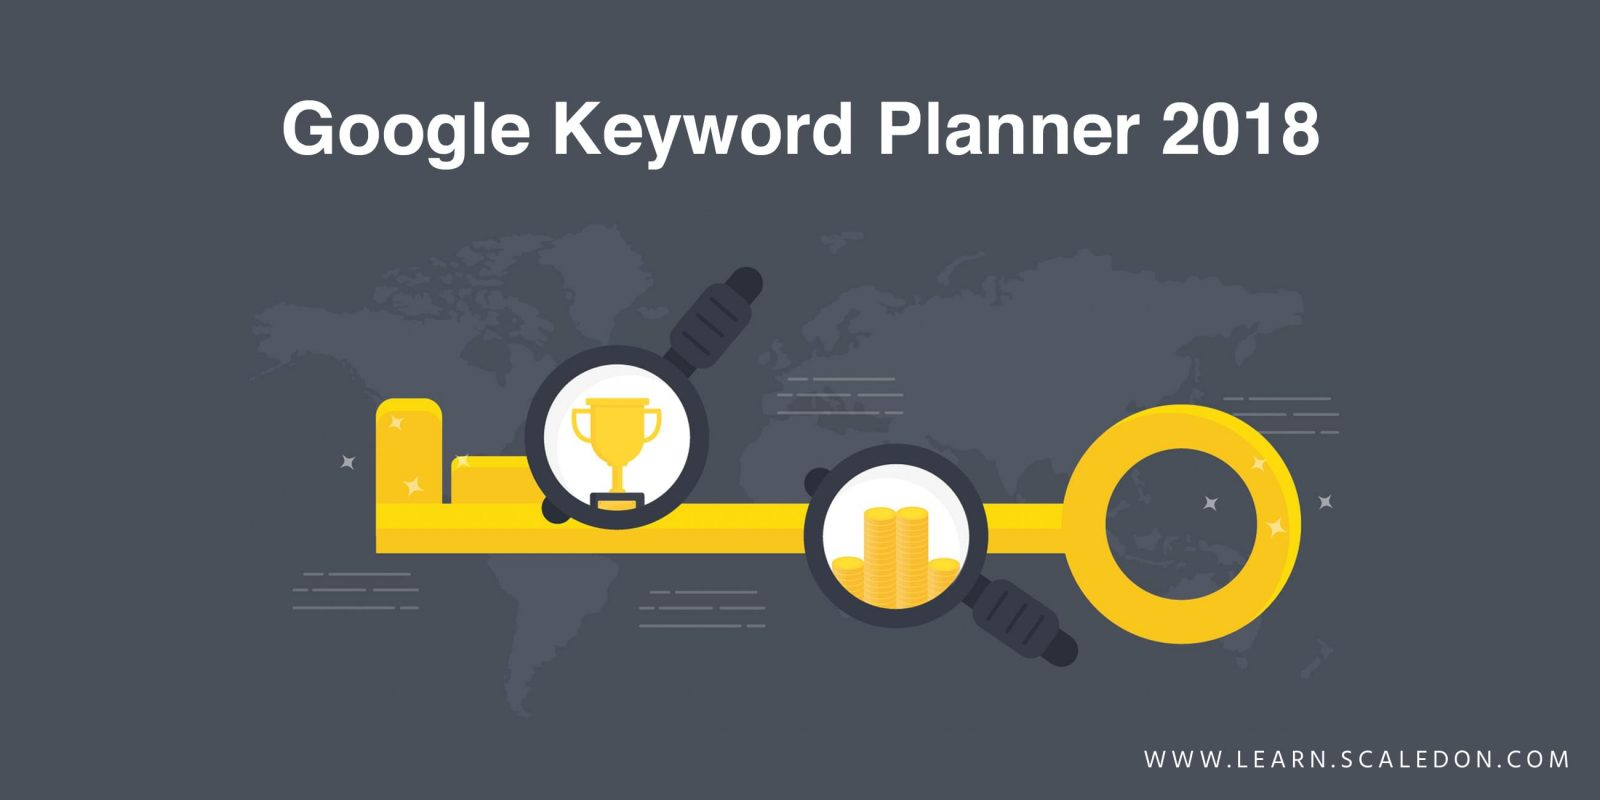 Tutorial Google Keyword Planner 2018